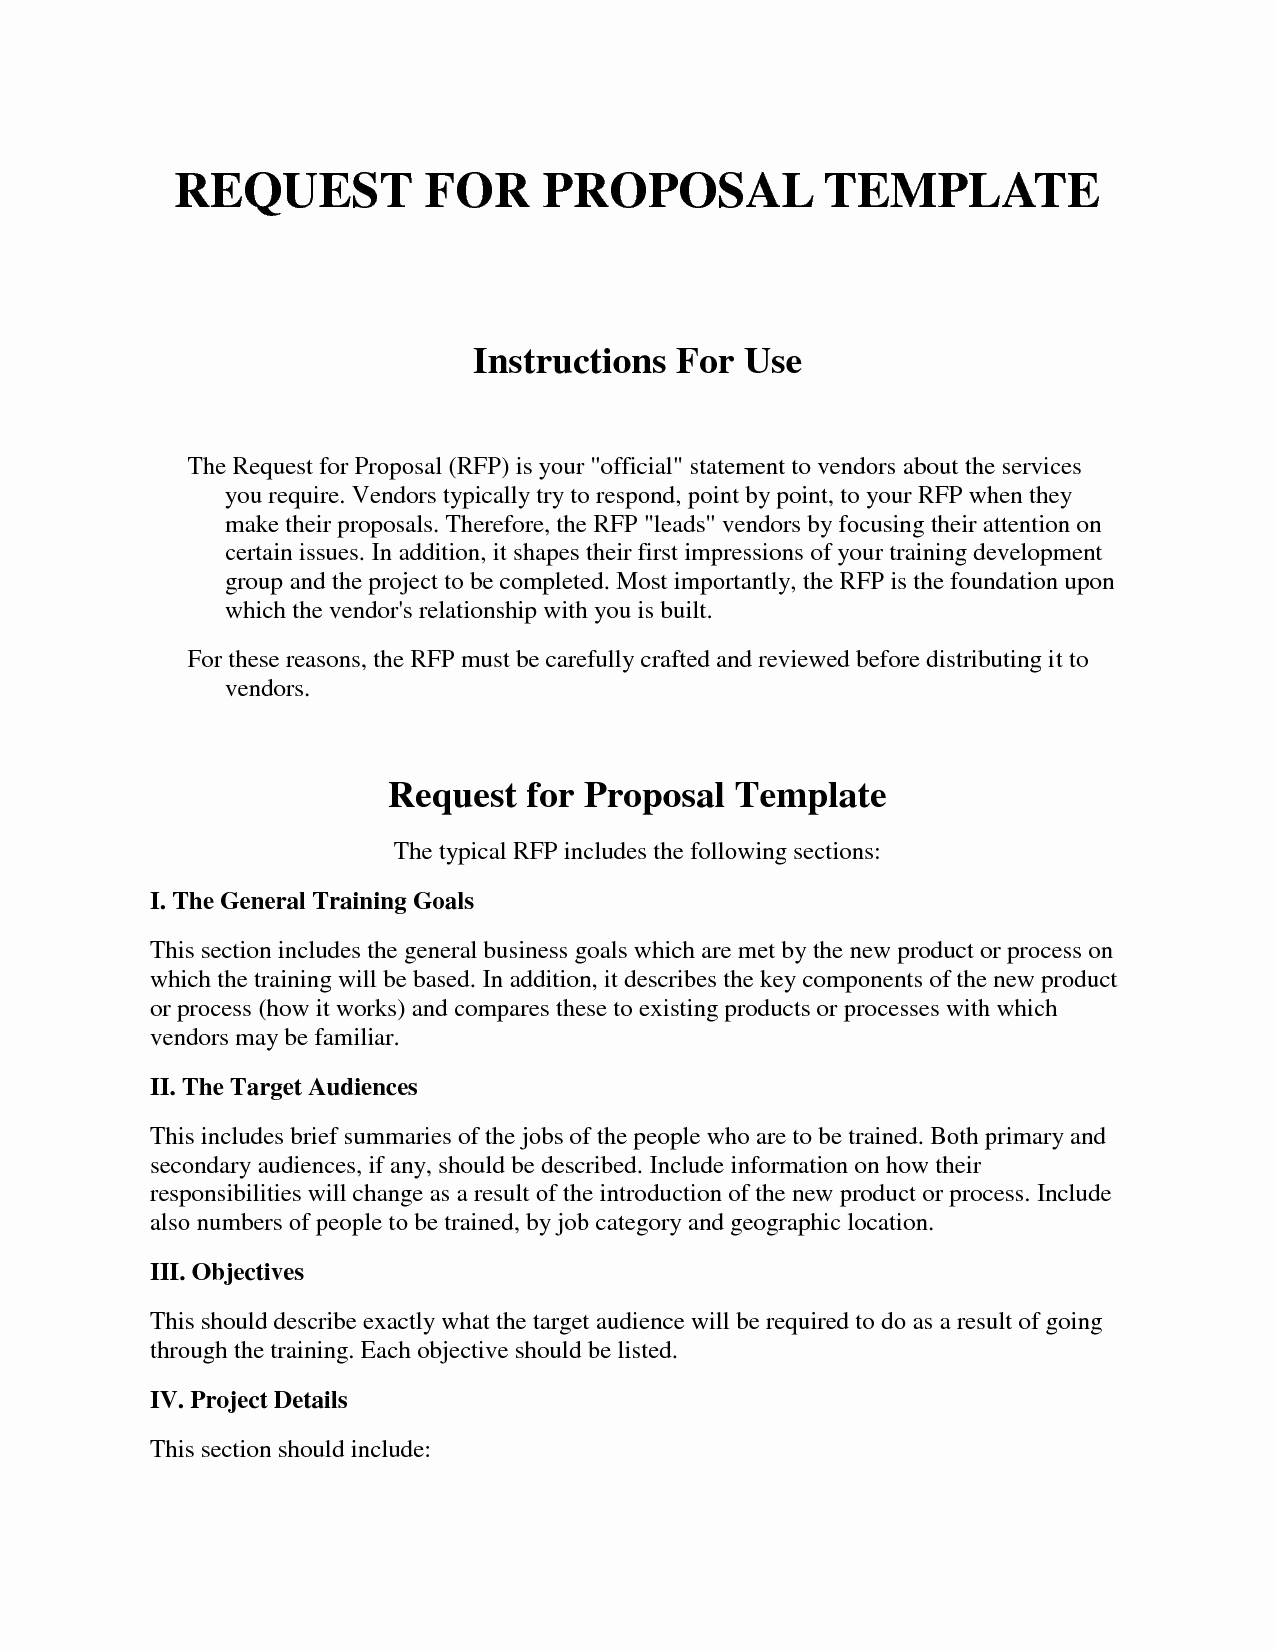 Simple Request for Proposal Example New Template Design Part 198